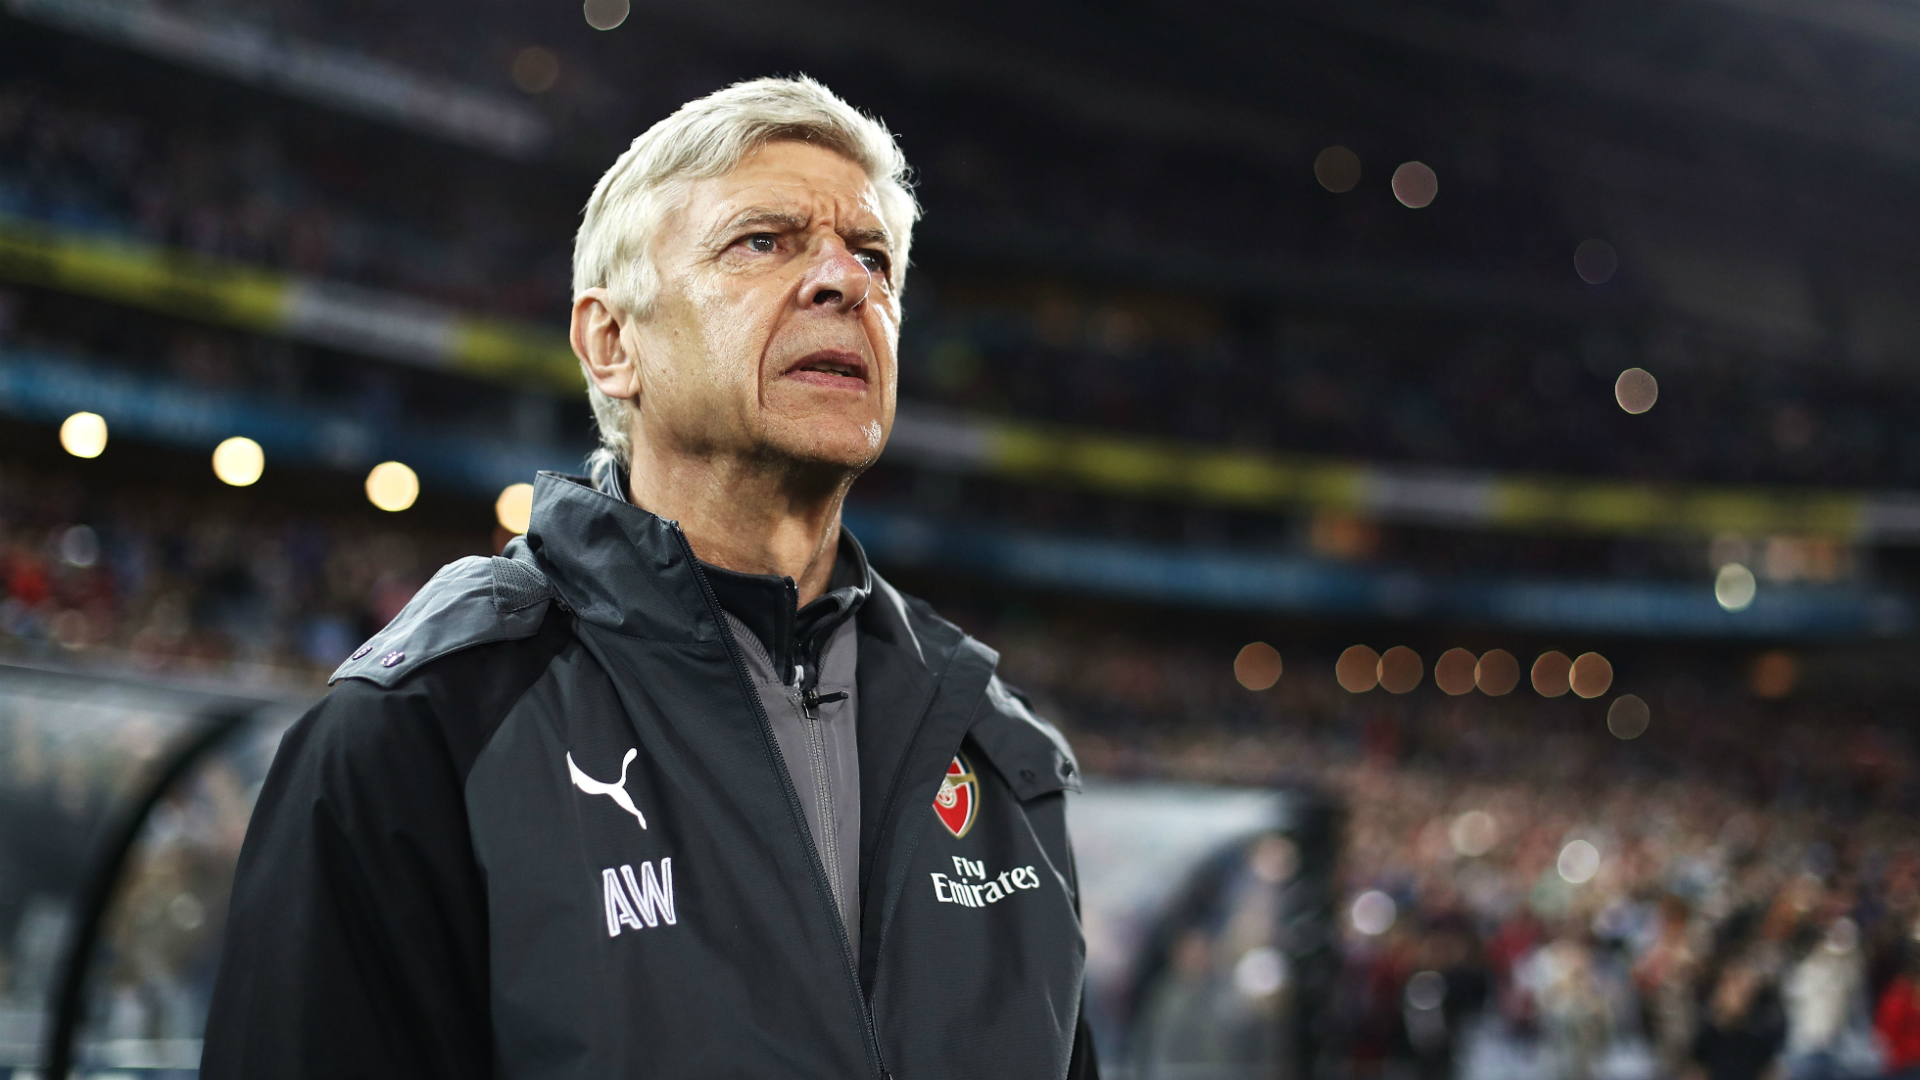 Wenger reveals he turned down Premier League offers due to Arsenal links